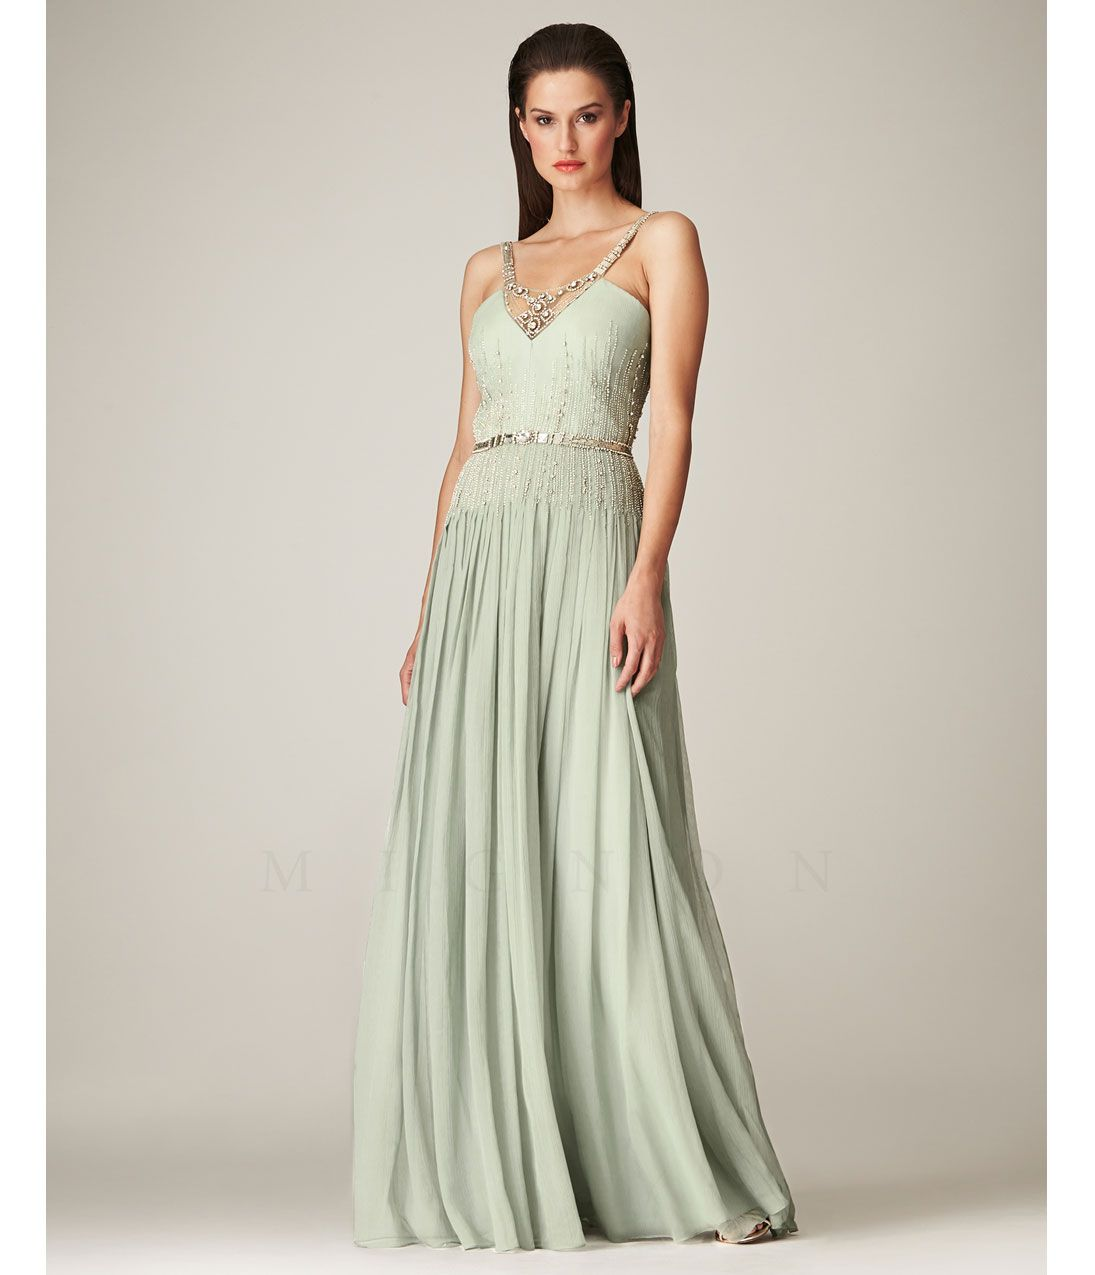 100 great gatsby prom dresses for sale 1930s style vintage mignon vm570 seamist 1930s style grecian beaded elegant dress 2015 prom dresses 59800 at vintagedancer ombrellifo Choice Image